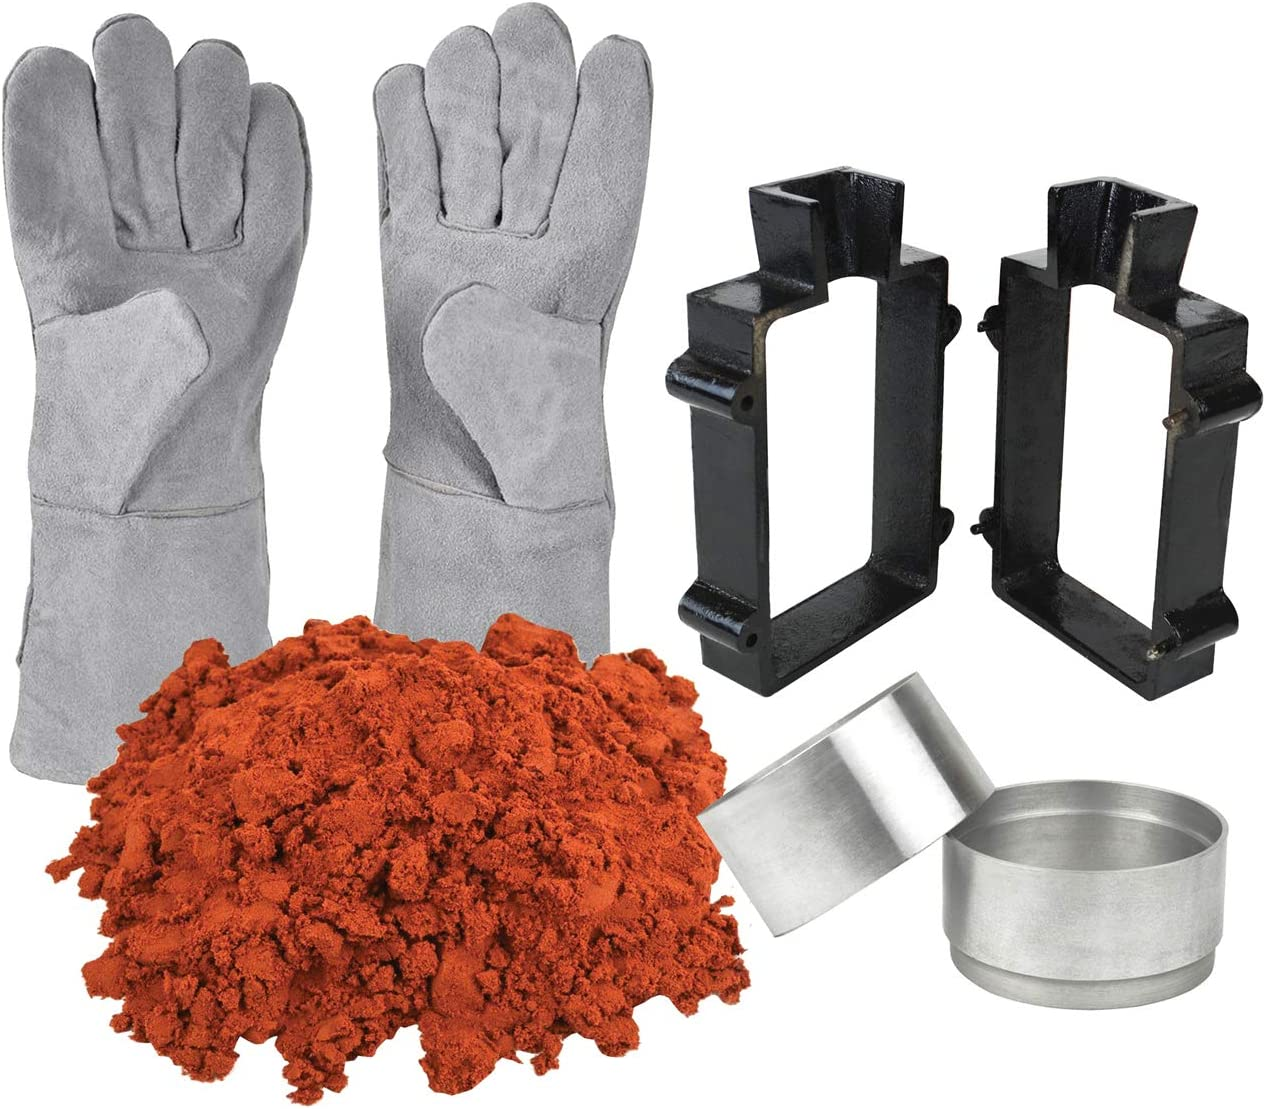 Sand Casting Set 10 Lbs Petrobond Quick Cast Sand Clay Safety Gloves Aluminum Round Molds Cast Iron Flask Frame Melt Pour Metals